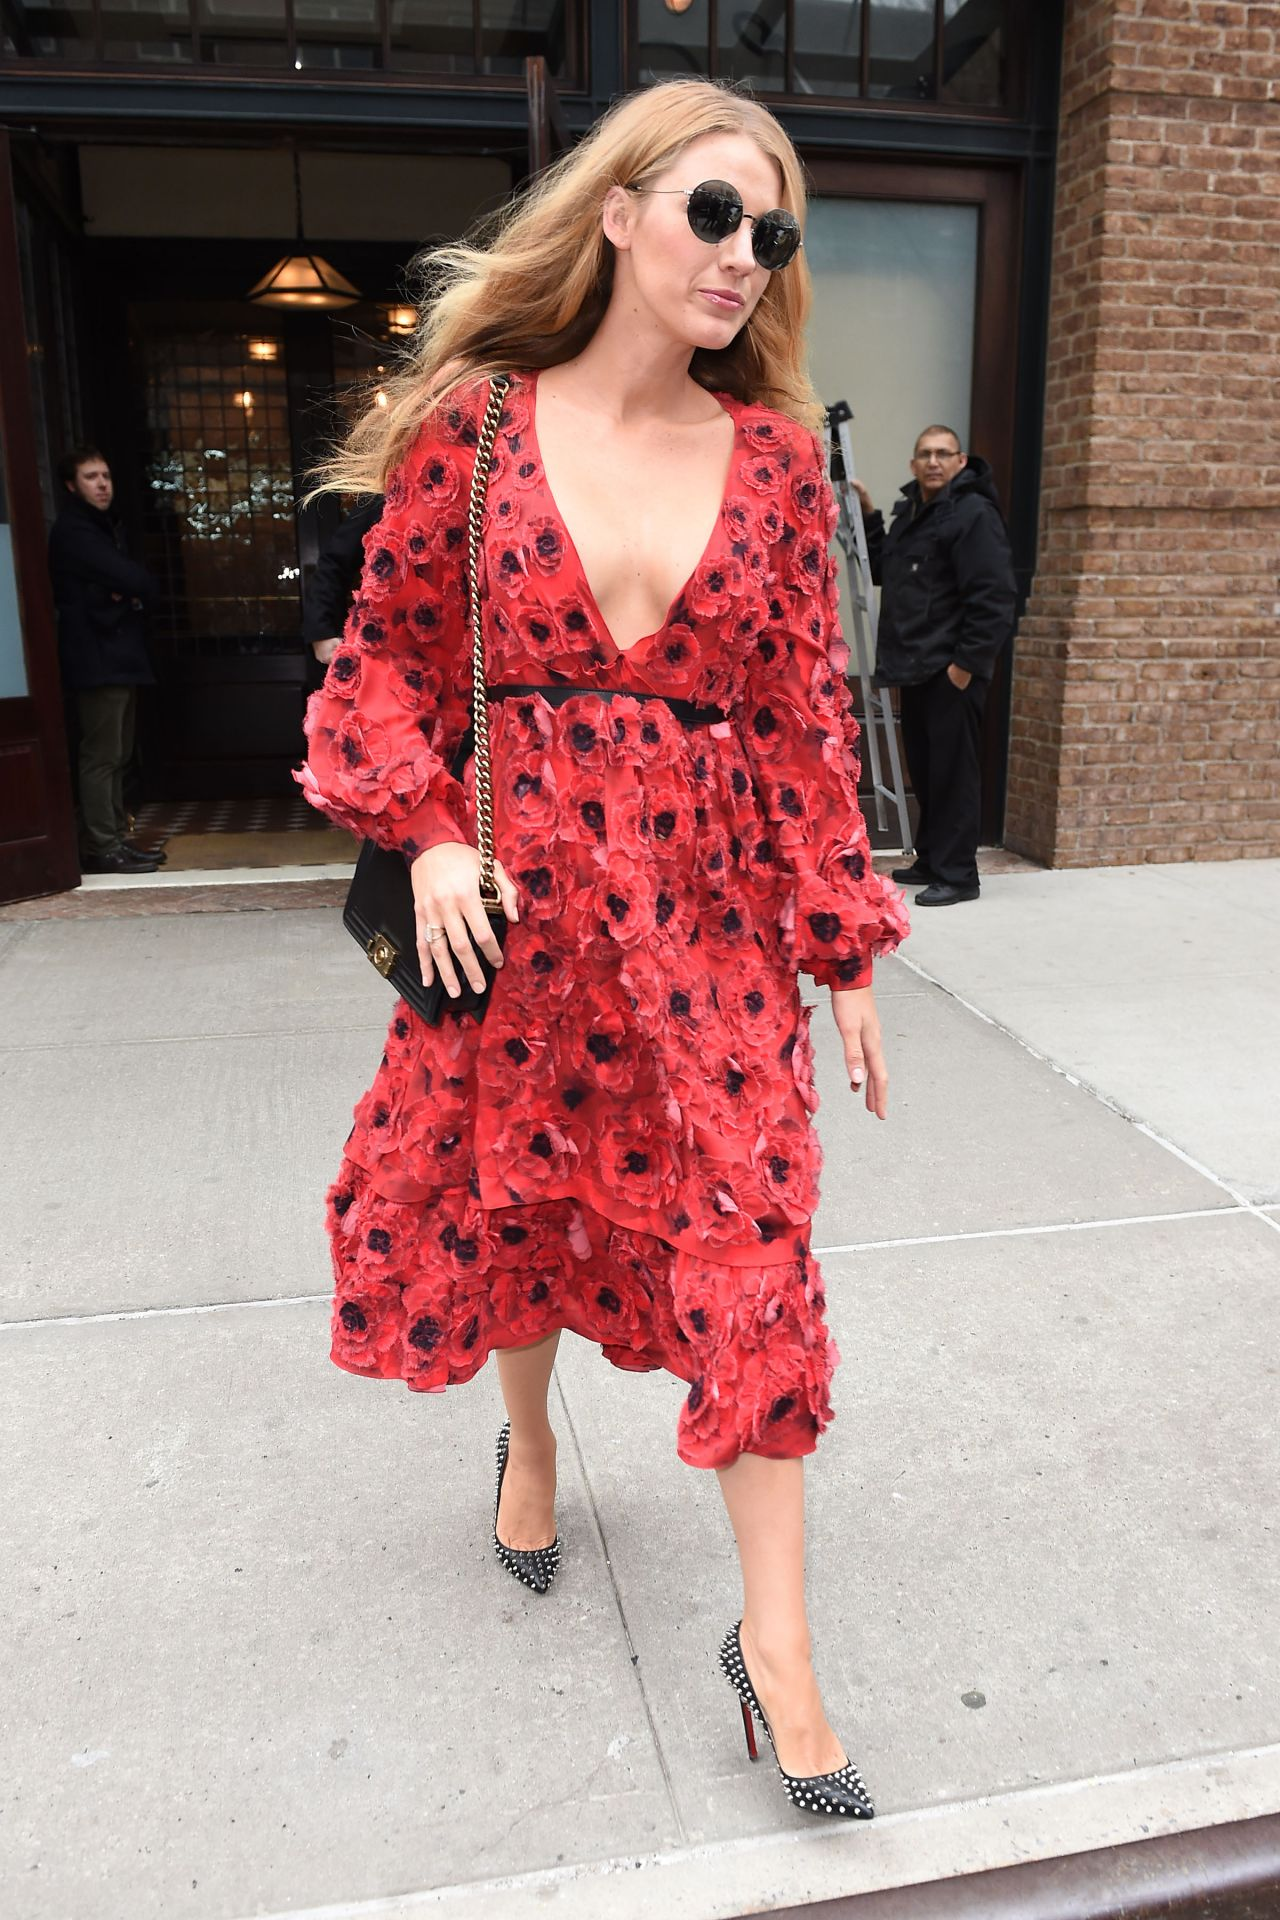 blake-lively-style-leaving-her-hotel-and-shopping-in-new-york-city-ny-2-17-2016-15